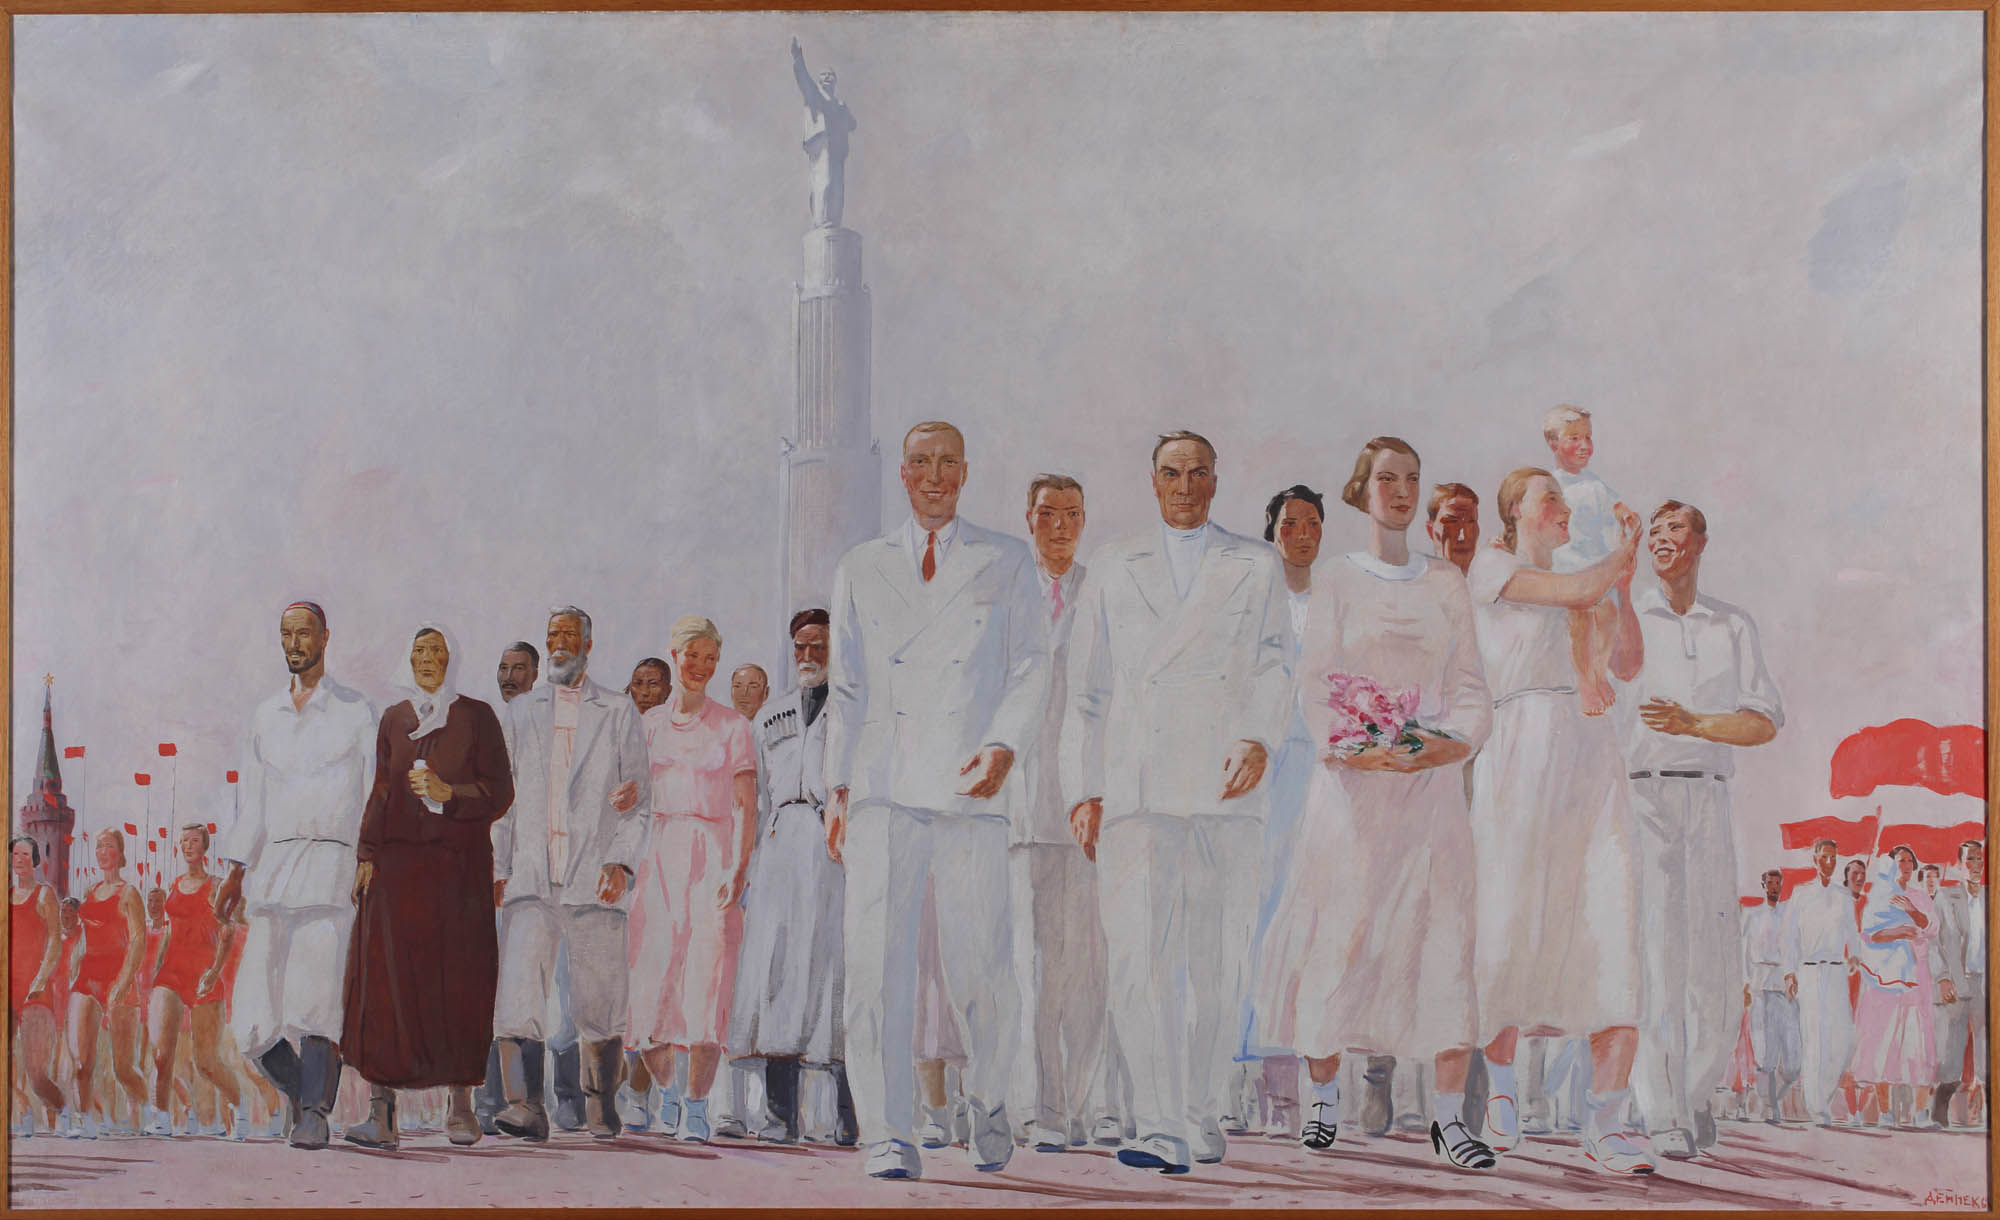 a painting of a group of people dressed in white heroically marching towards the viewer in arrow formation